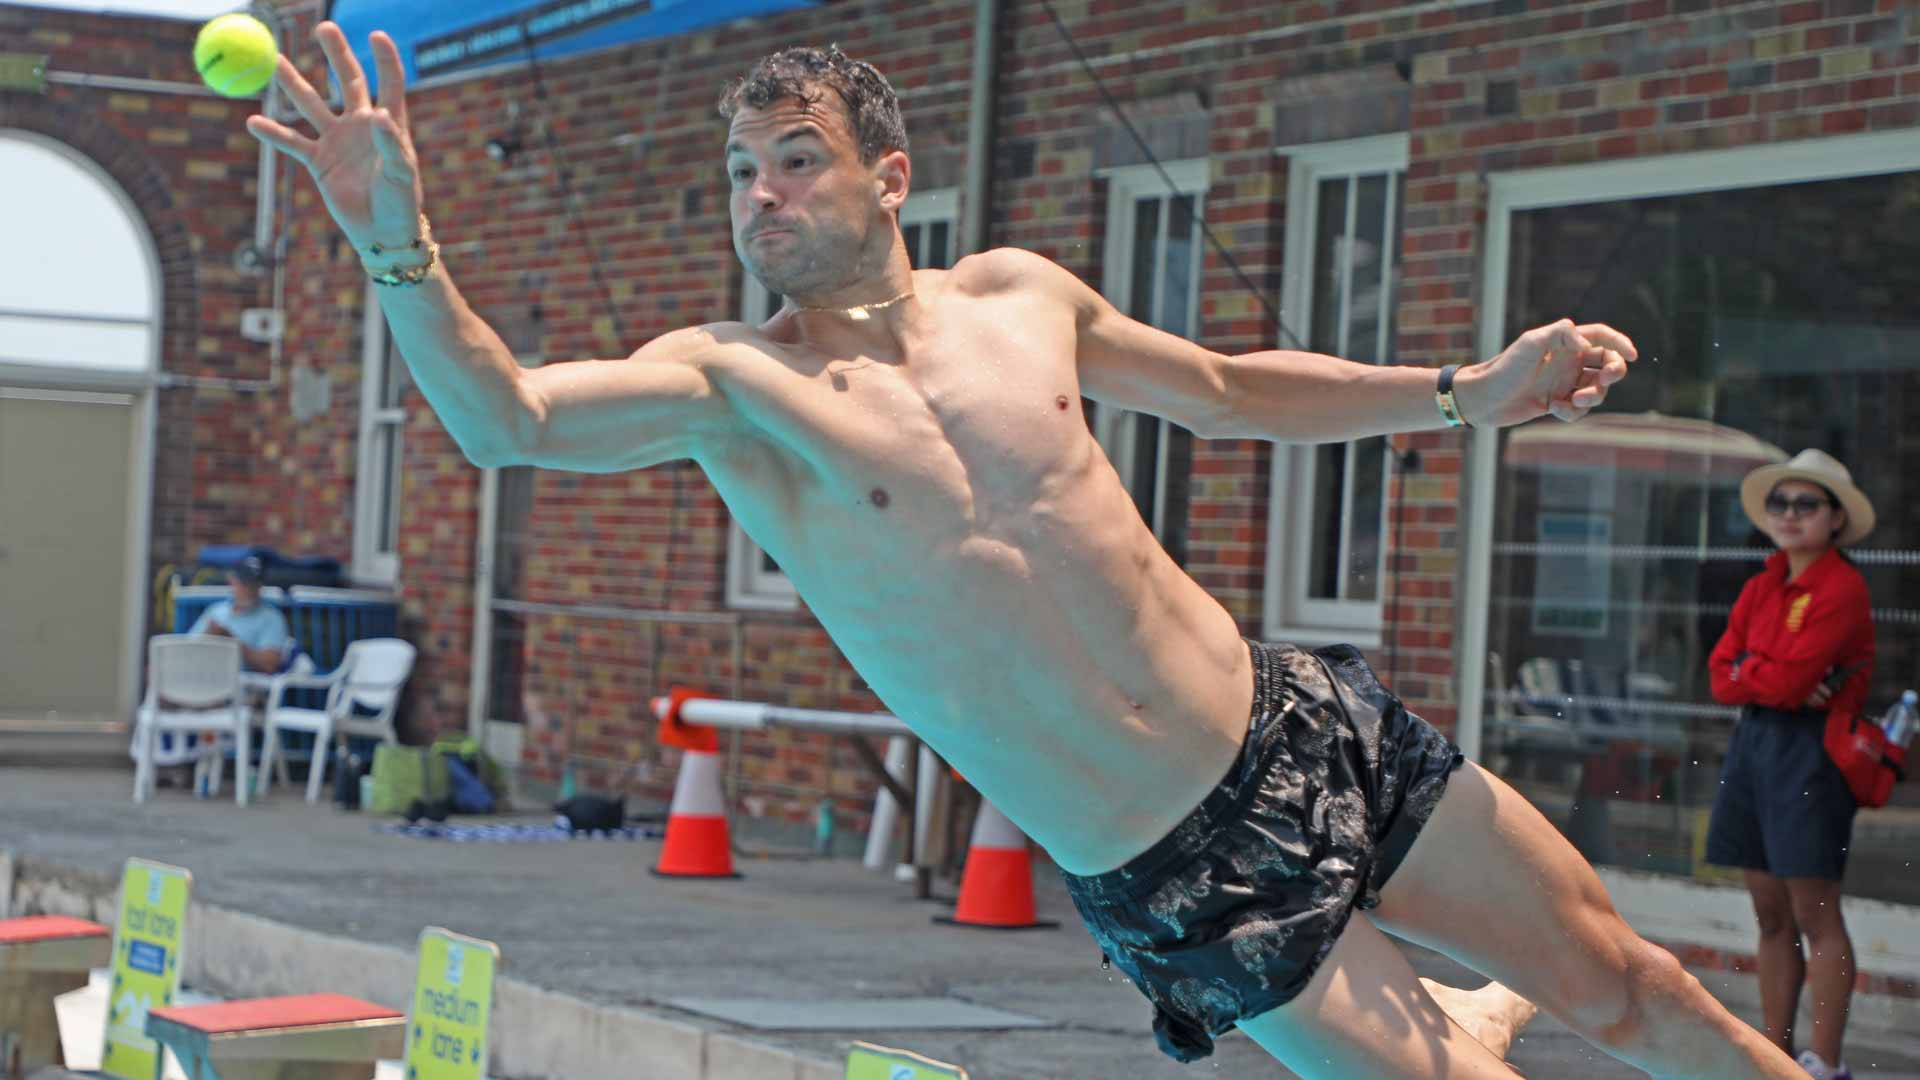 <a href='https://www.atptour.com/en/players/grigor-dimitrov/d875/overview'>Grigor Dimitrov</a> dives into North Sydney Pool.